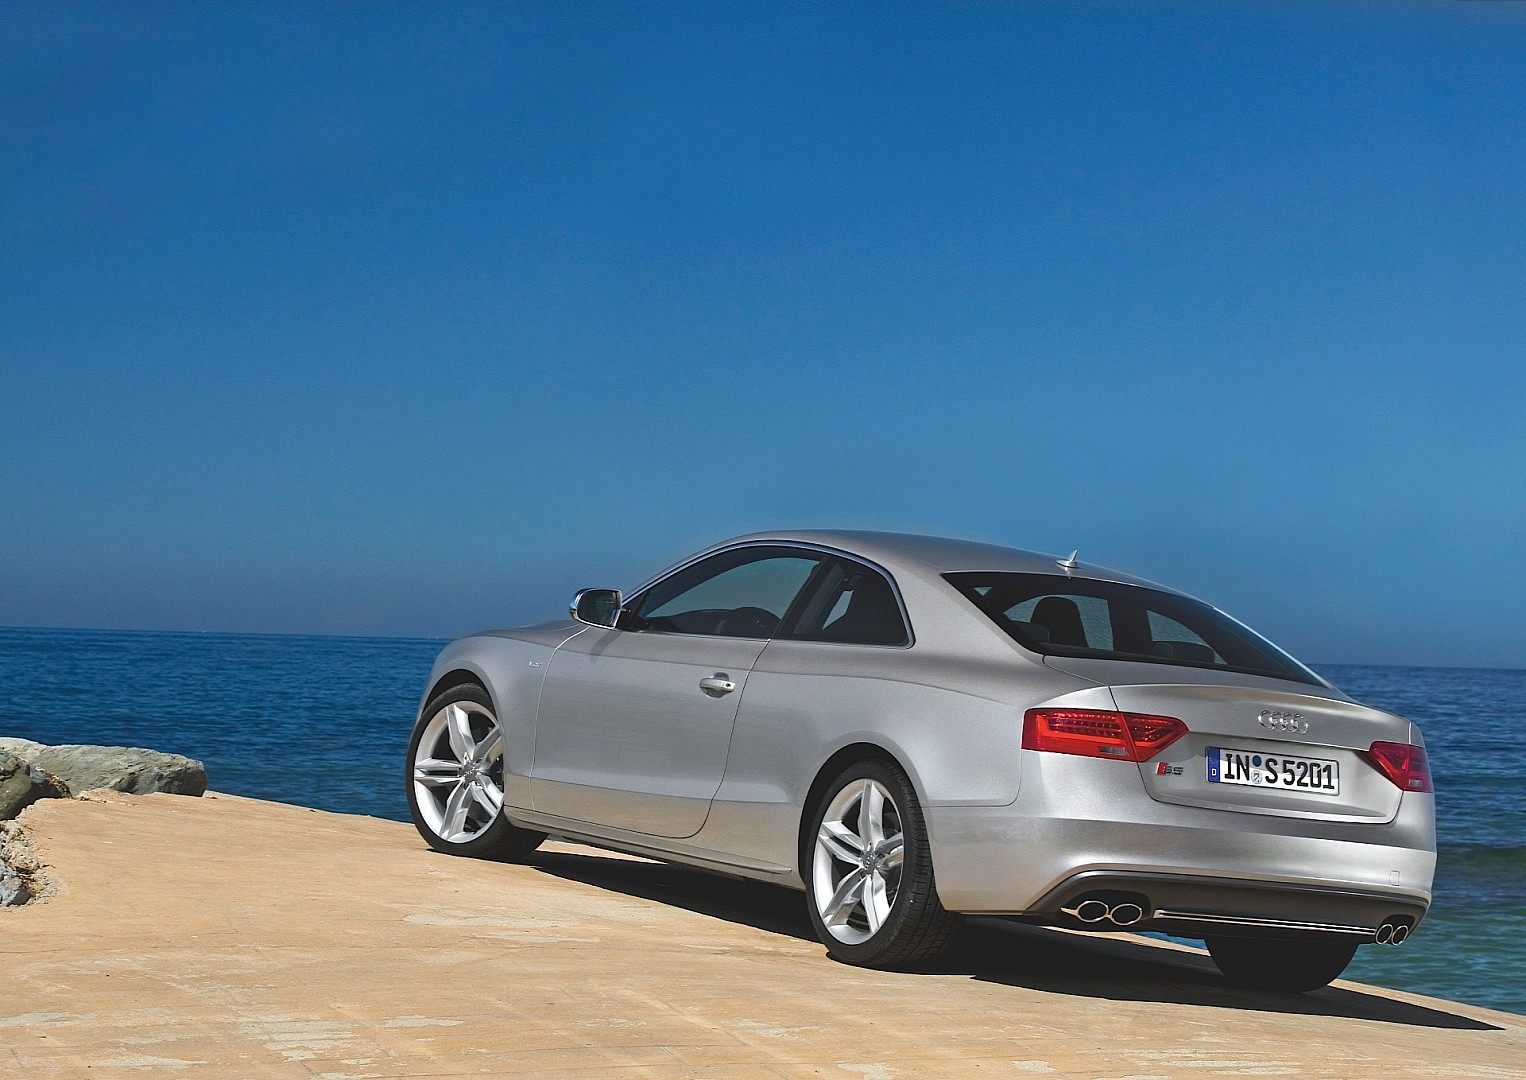 audi s5 coupe specs 2012 2013 2014 2015 2016. Black Bedroom Furniture Sets. Home Design Ideas